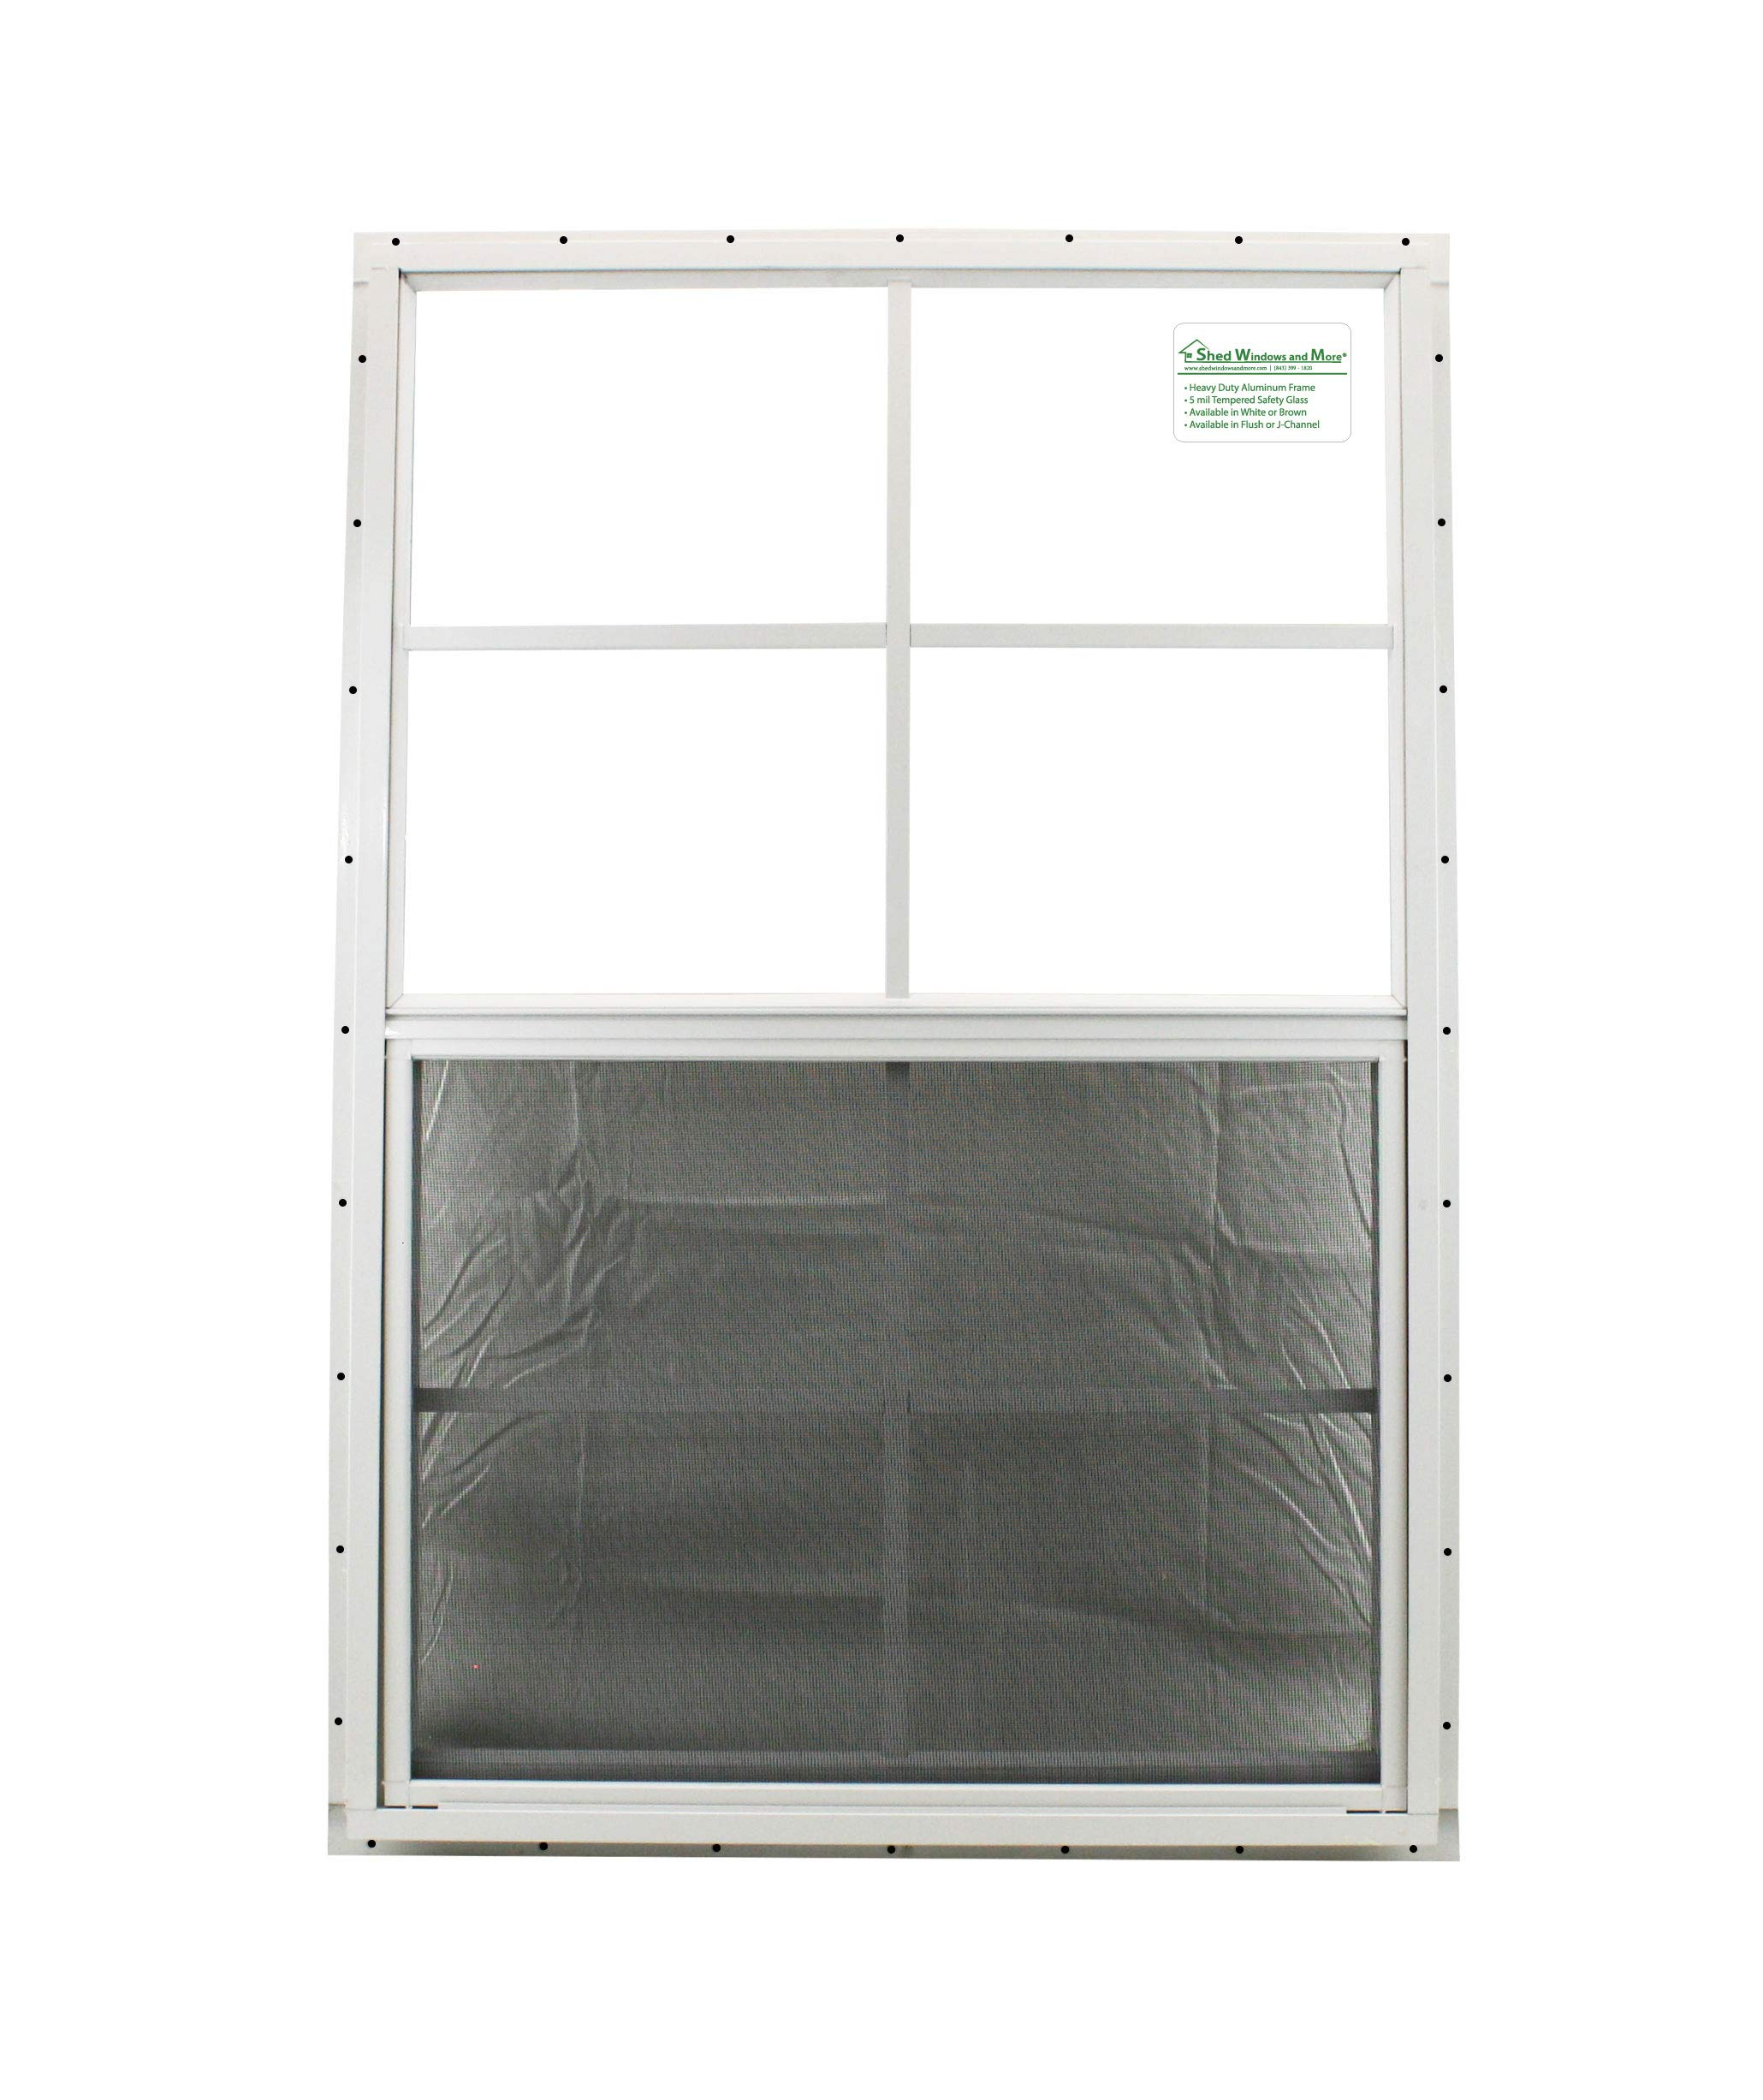 Shed Windows 24'' X 36'' White J-Channel Mount, SAFETY/TEMPERED GLASS, Playhouse Windows, Chicken Coop Windows